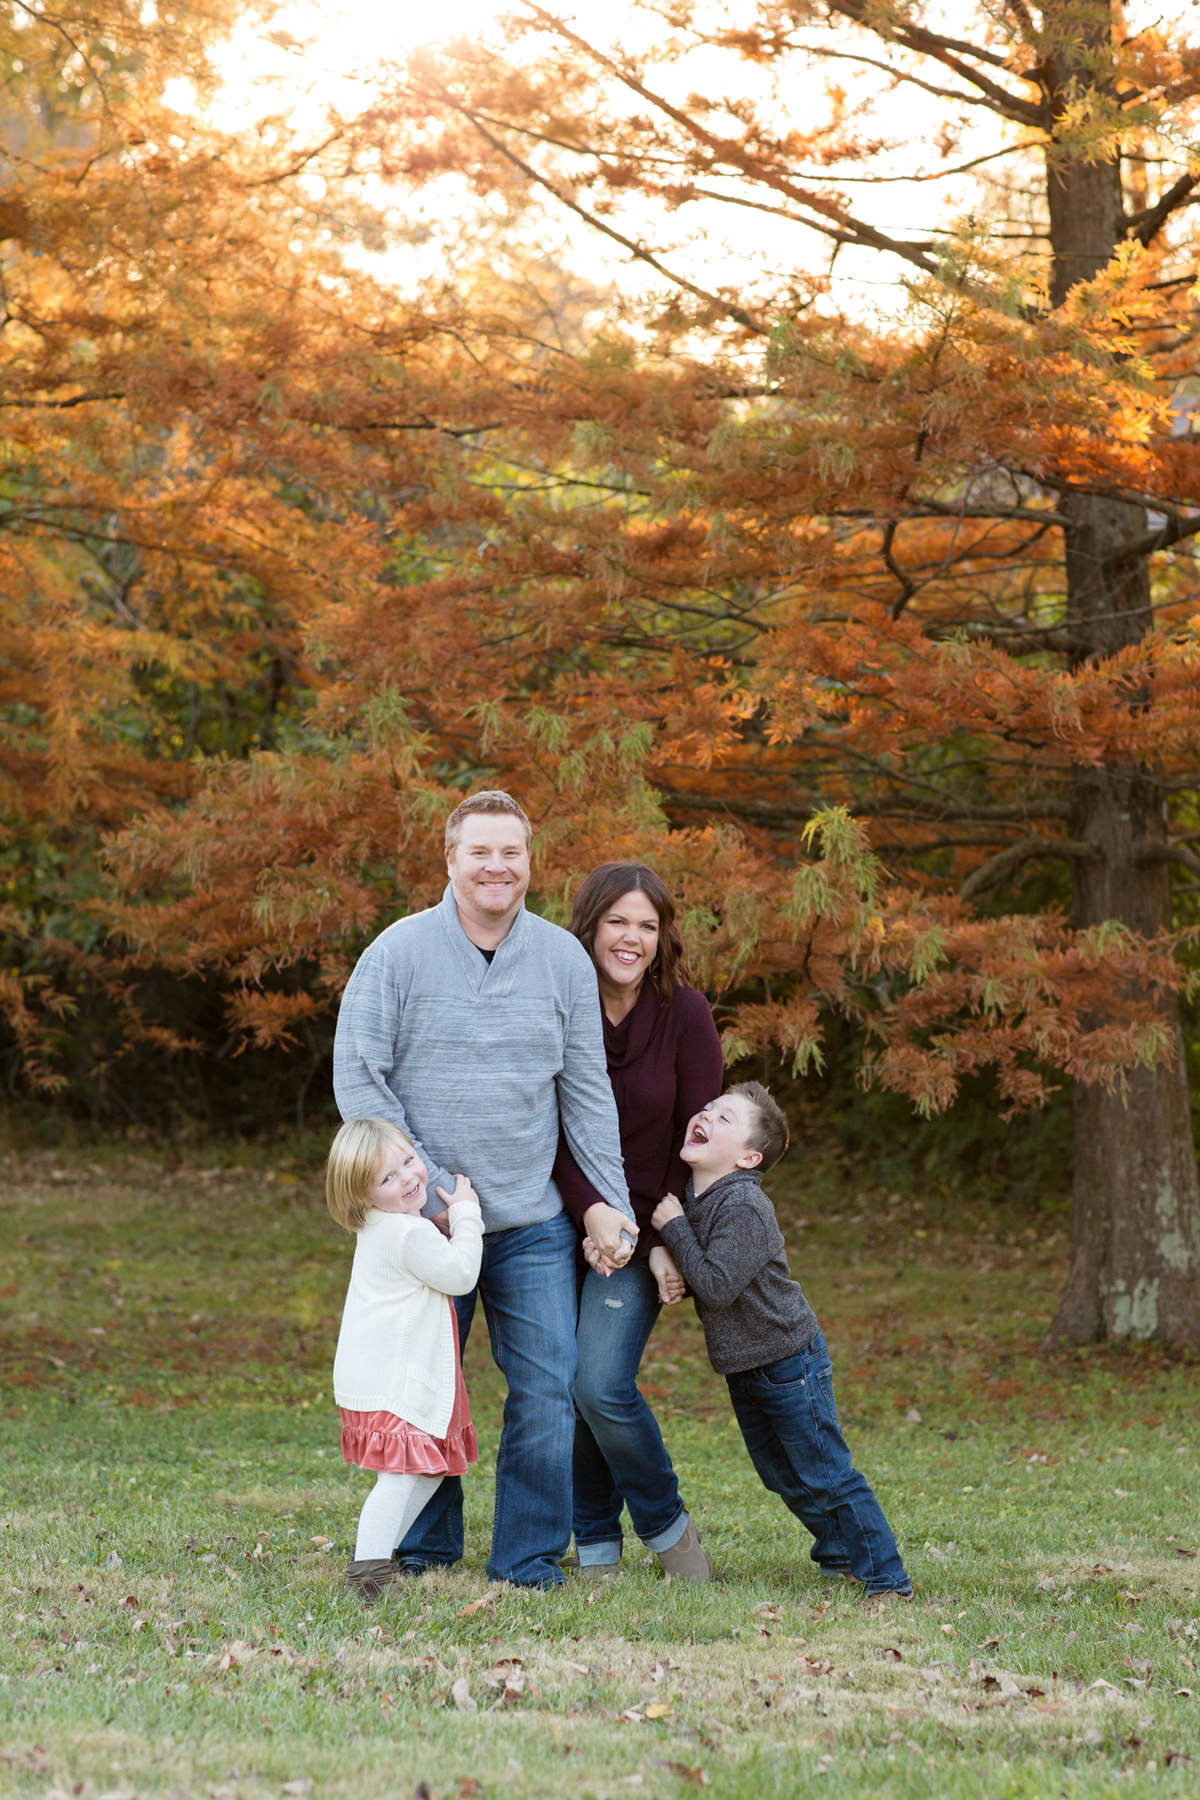 family-photographer-st-louis-park-location-city-58Chilton-053-110718